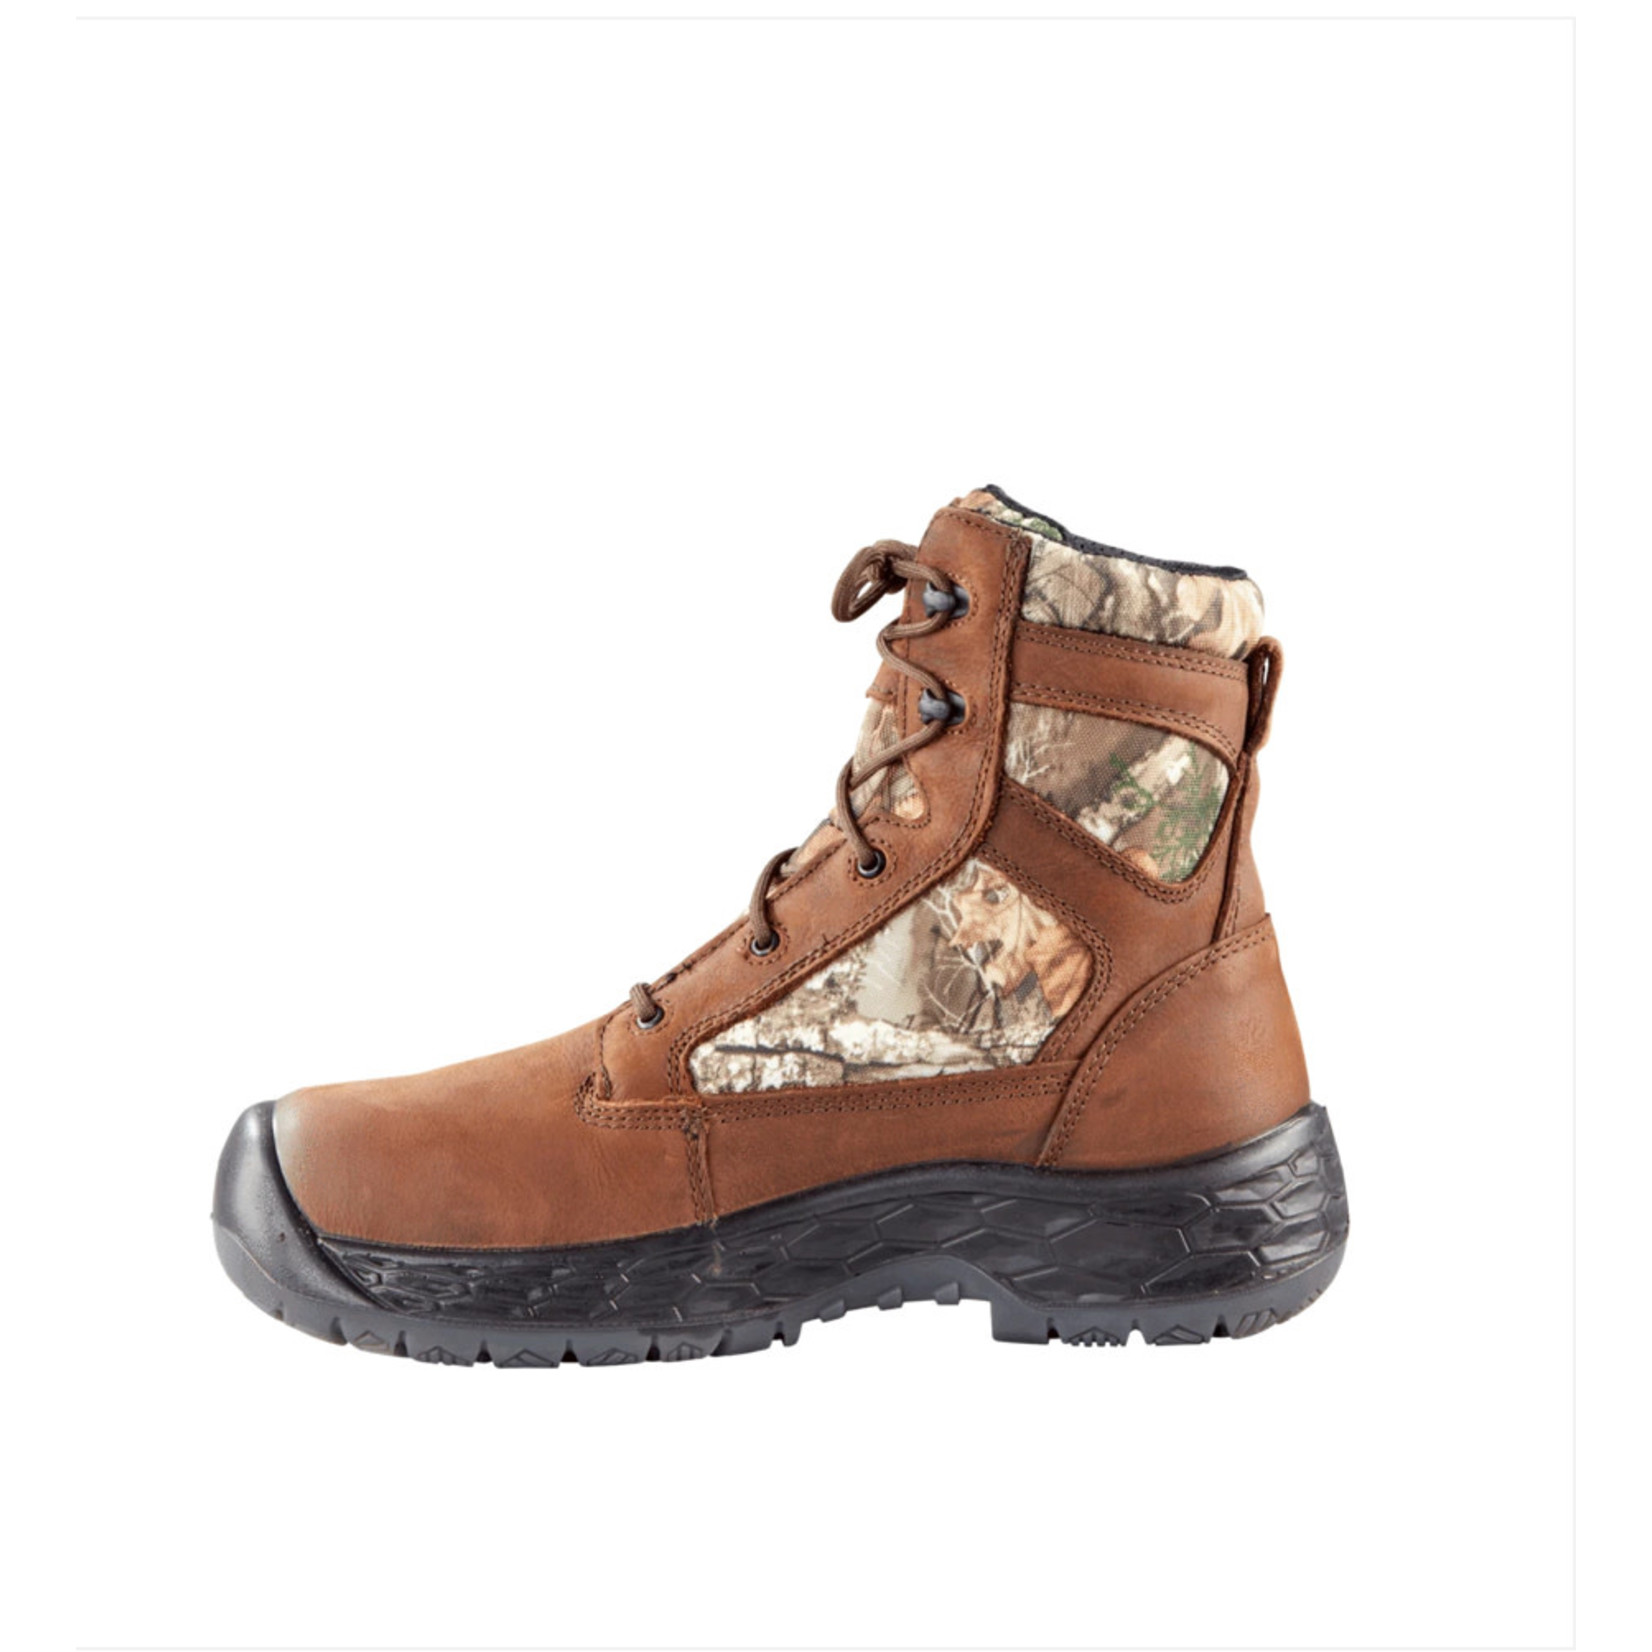 Baffin Baffin Men's Pacer Hunting Boot Real Tree CFLX-M006